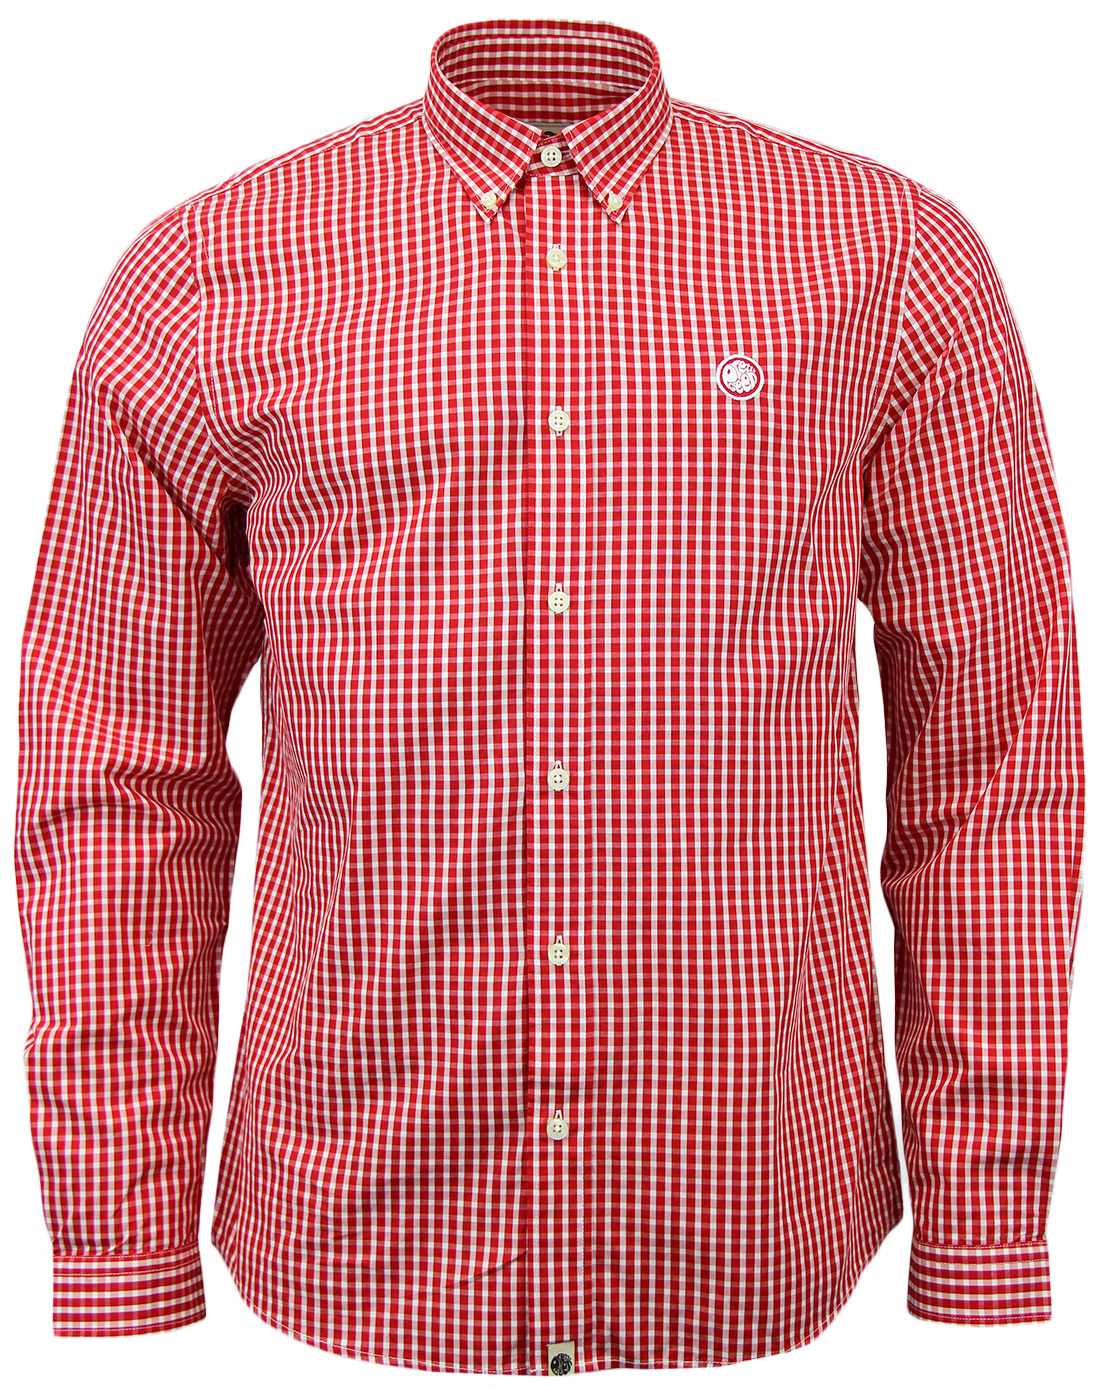 Pretty green ebsworth retro mod 60s gingham shirt in red for Red and green checked shirt